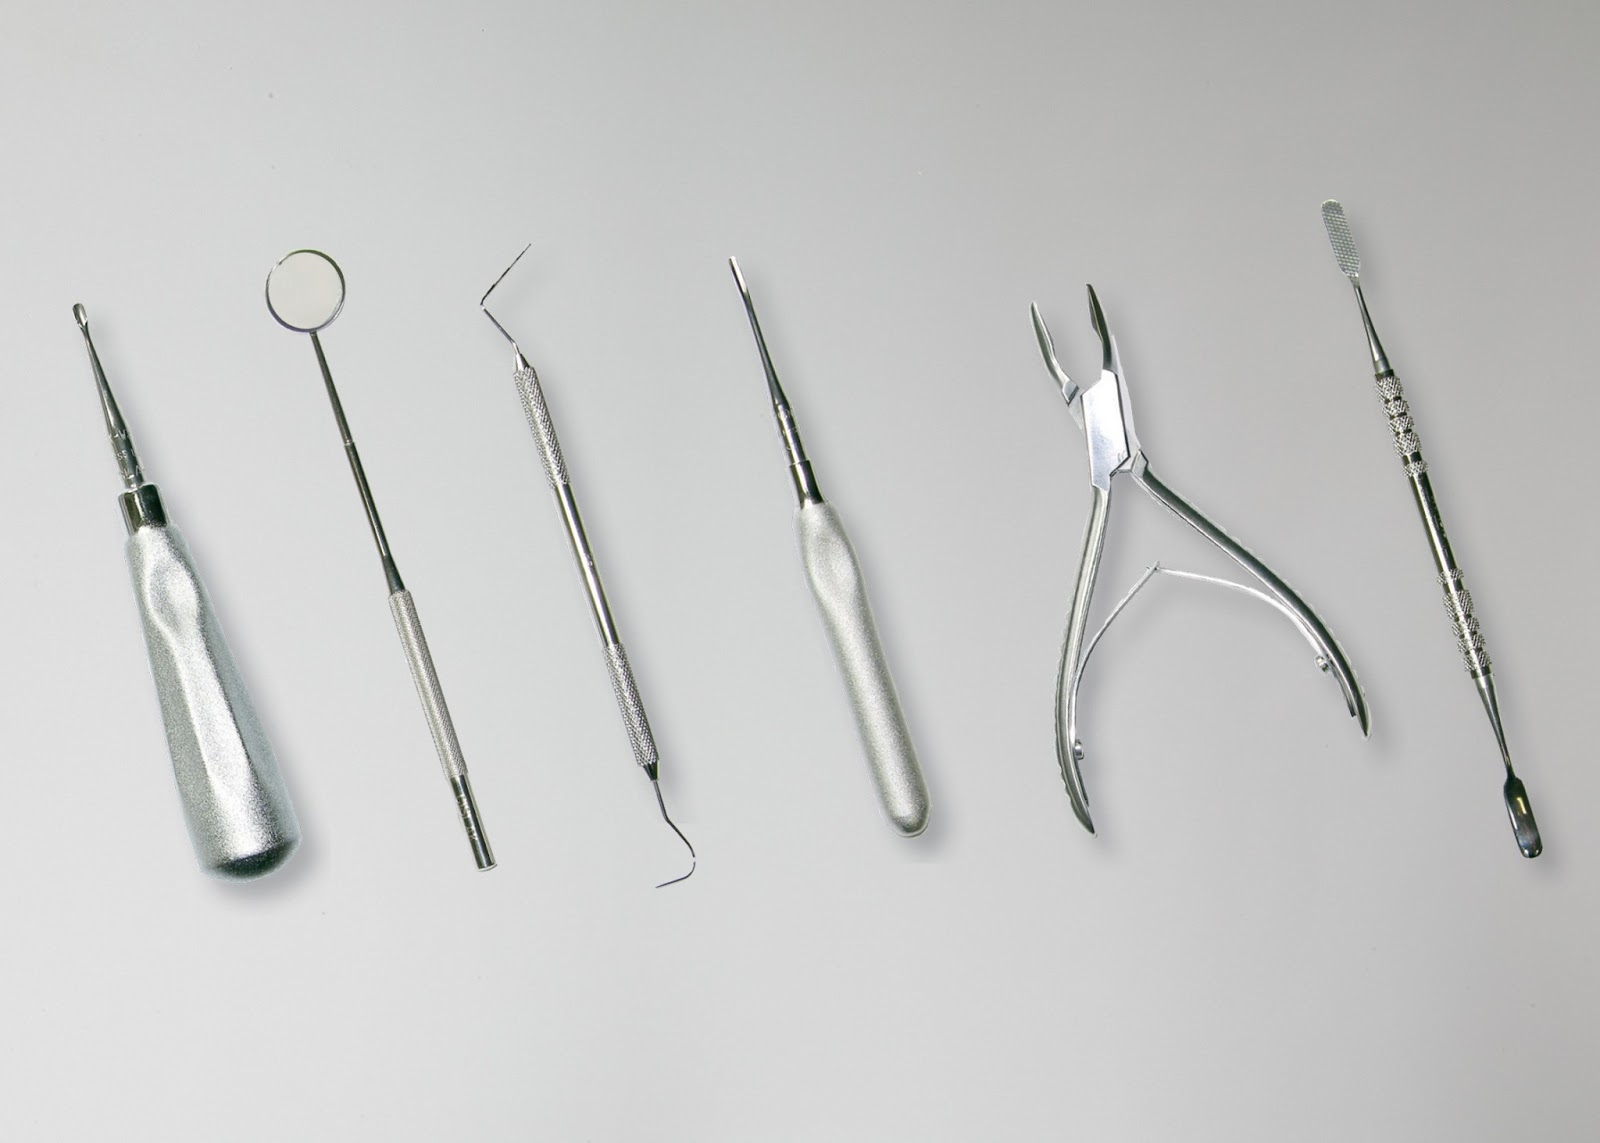 Inspecting surgical instruments: an illustrated guide.